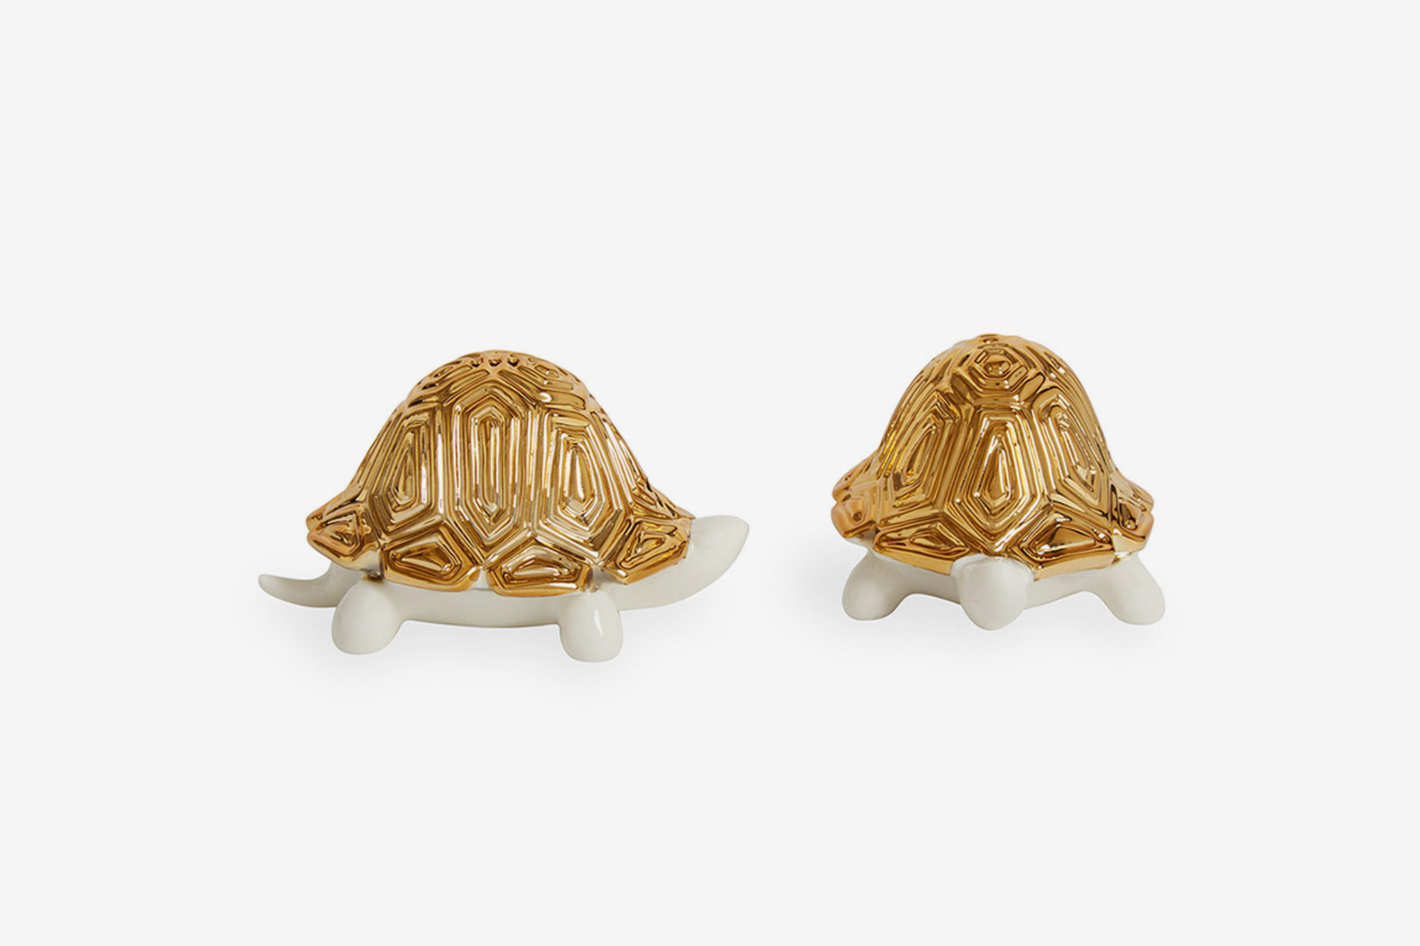 Jonathan Adler Tortoise Salt and Pepper Shakers